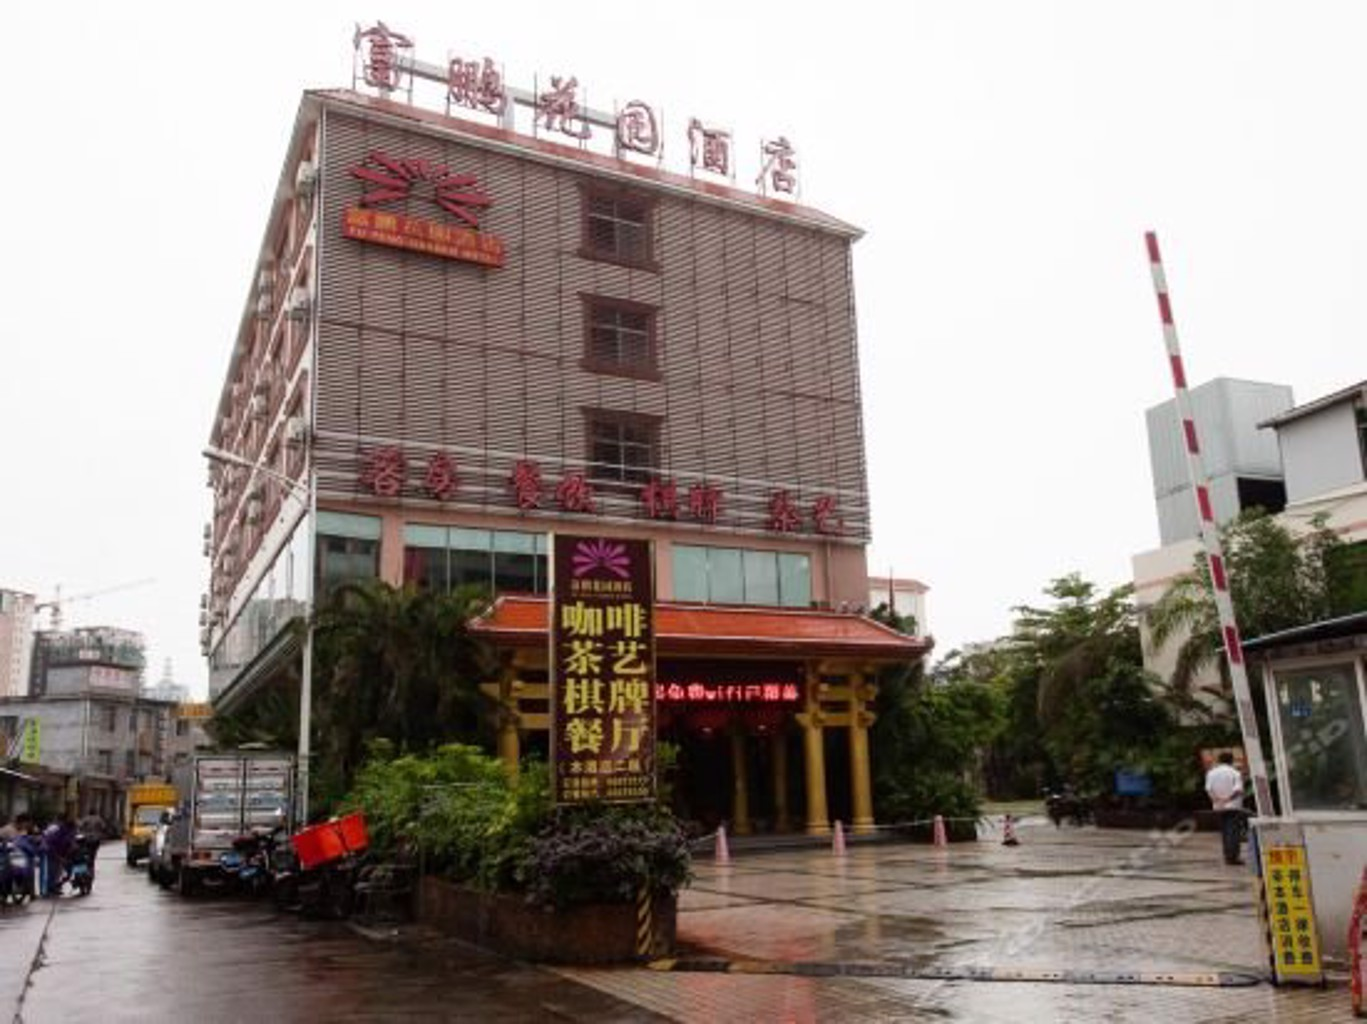 Gallery image of Fupeng Garden Hotel